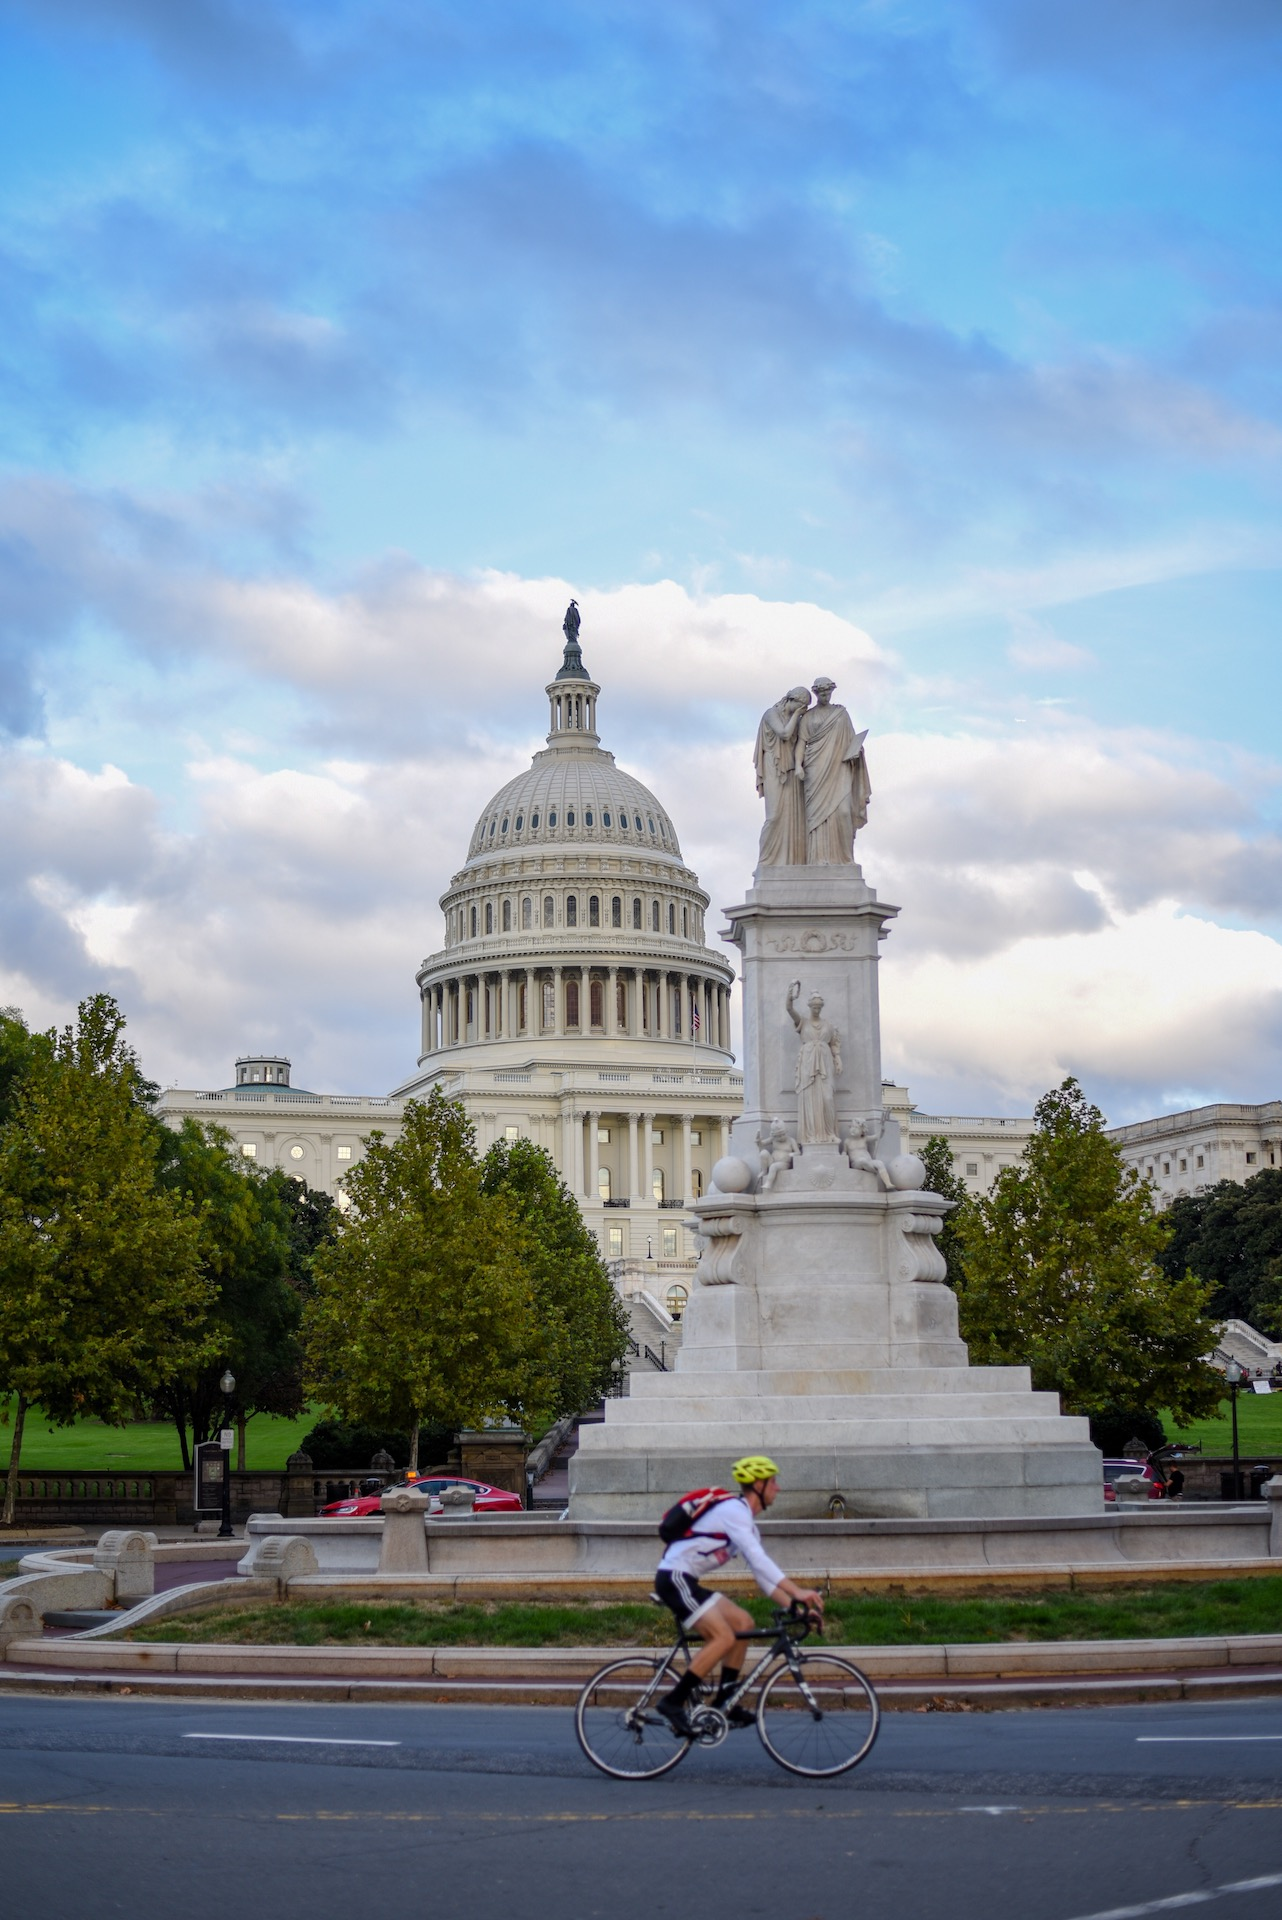 US Capitol Building, with statue in front